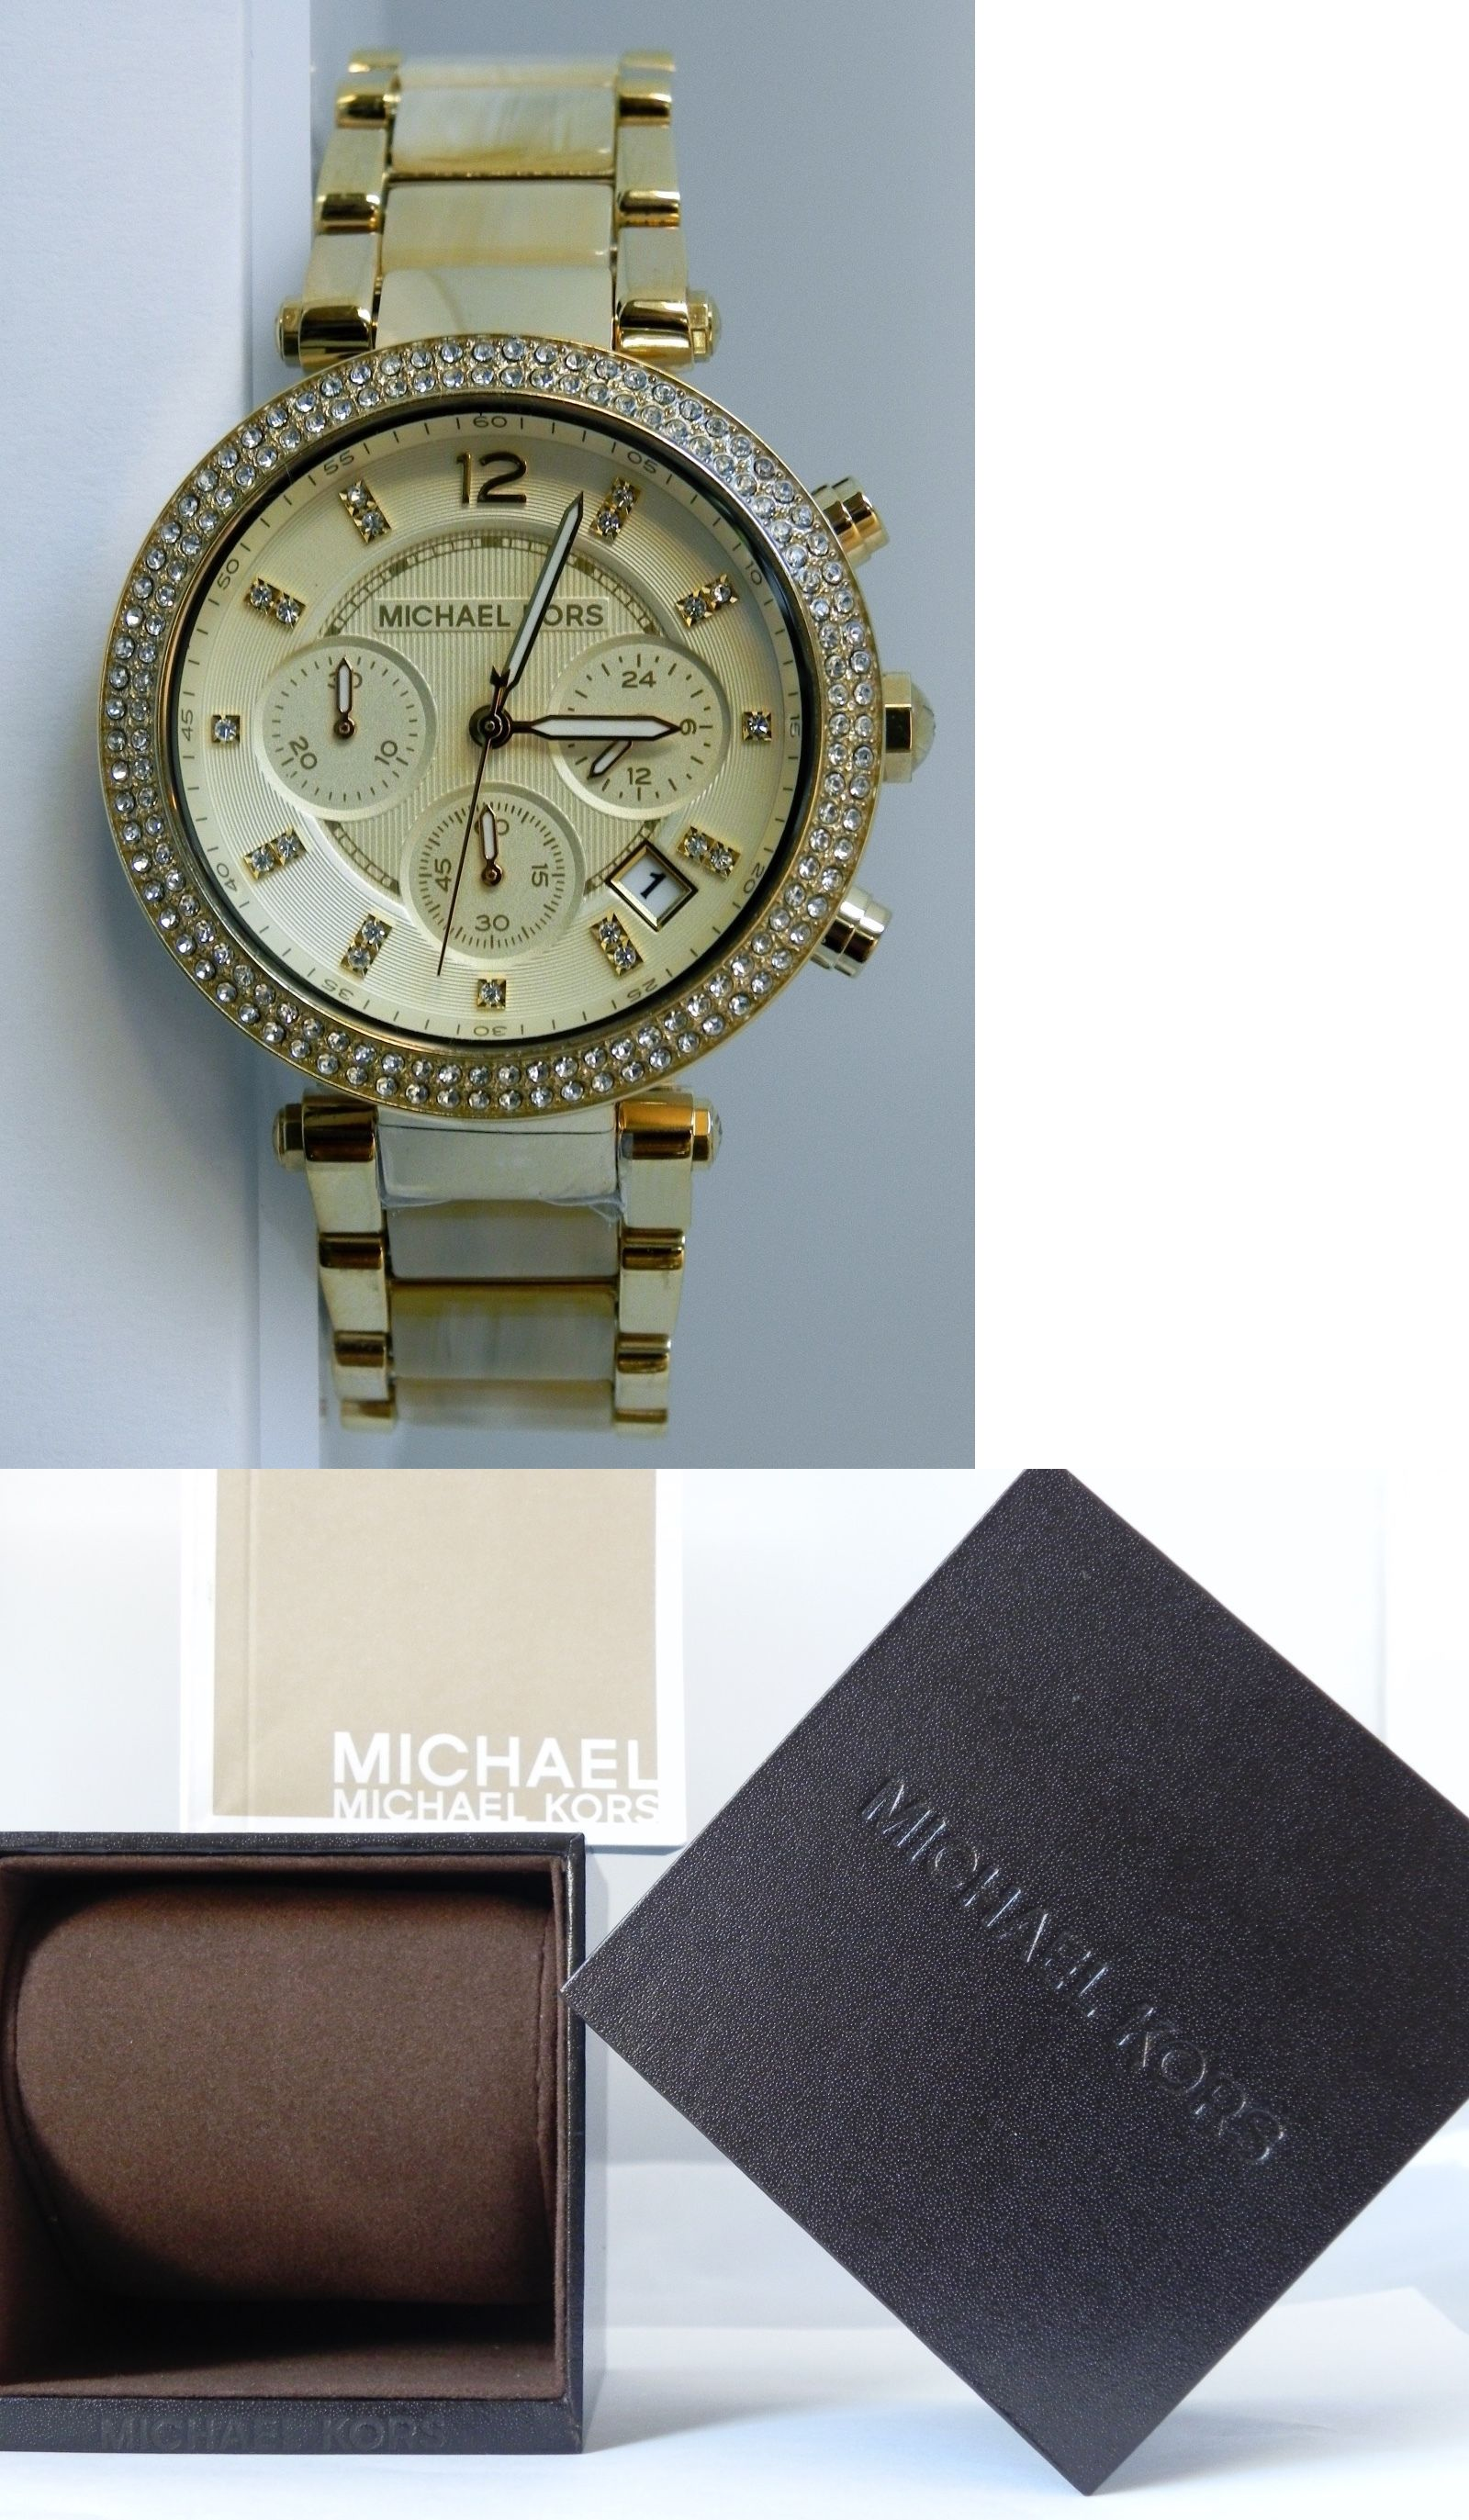 988b01e5b481 Parts and Accessories 51021  Michael Kors Women S Mk5632 Parker Chronograph  Champagne Dial 39 Mm Watch -  BUY IT NOW ONLY   295 on eBay!